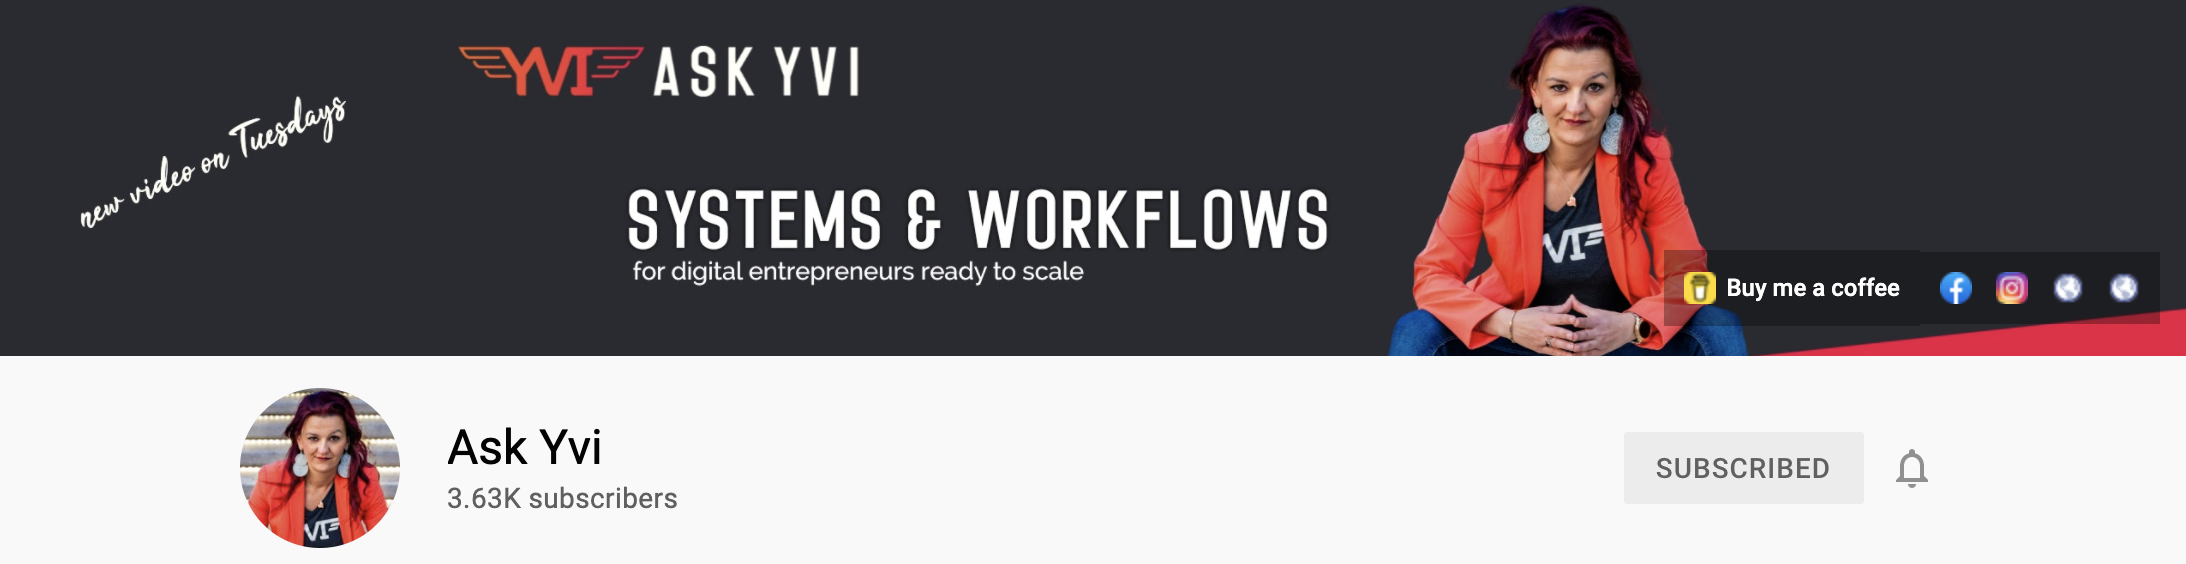 Ask Yvi systems and workflows YouTube header image - sign-up